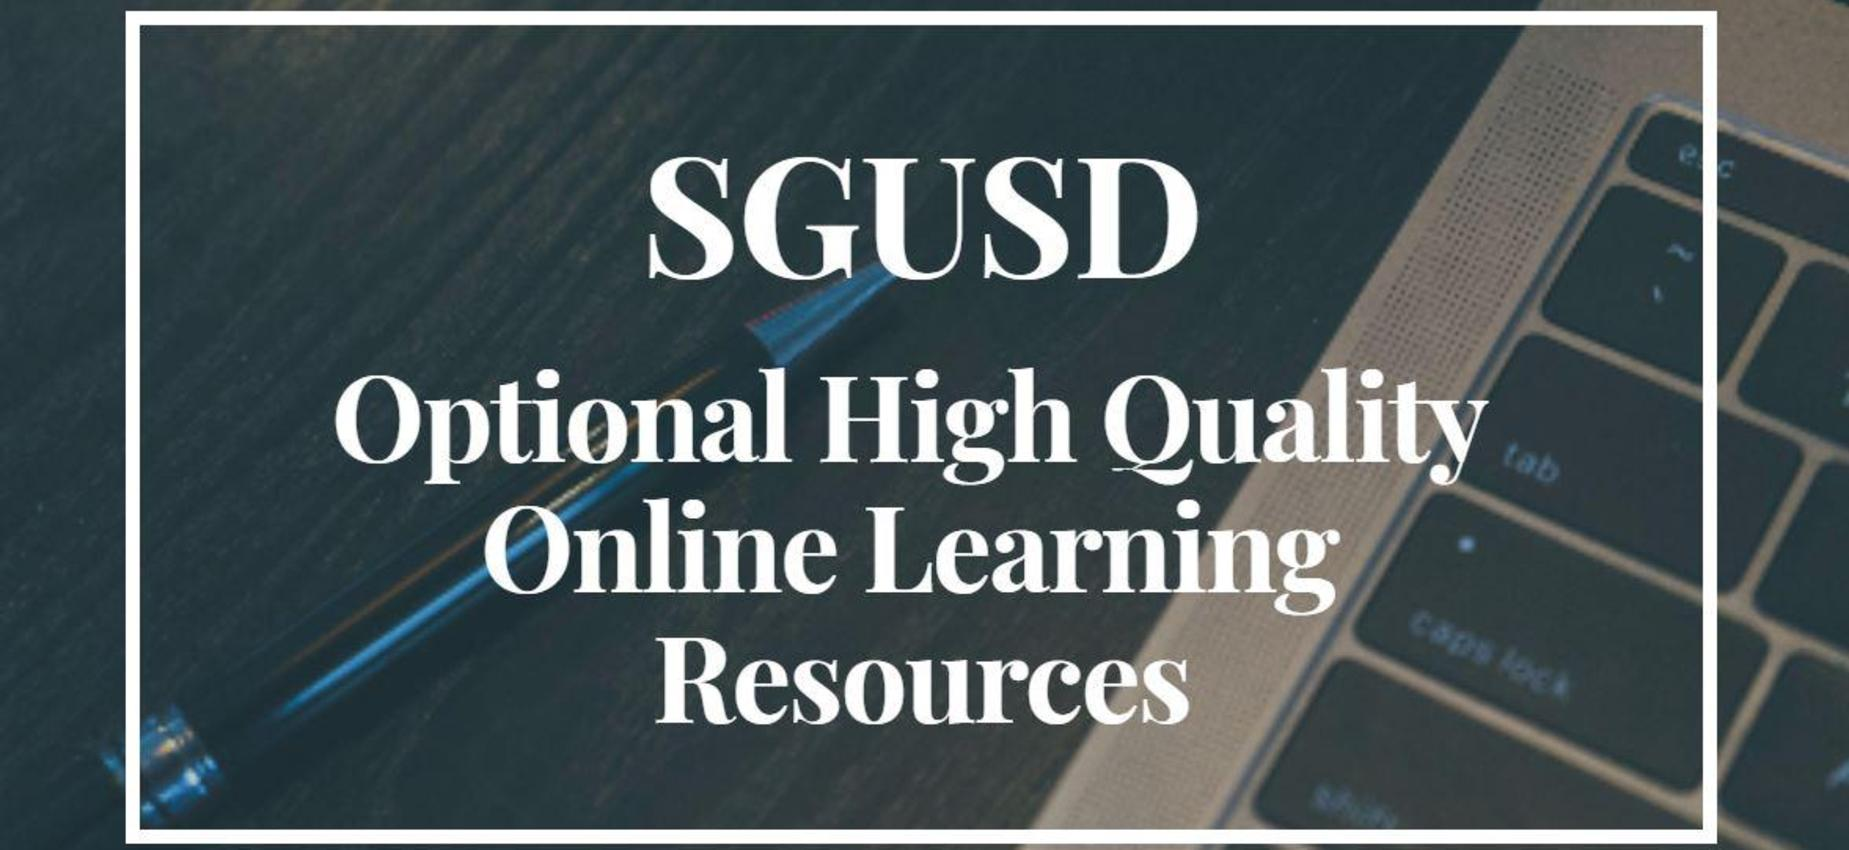 Optional Online Resources